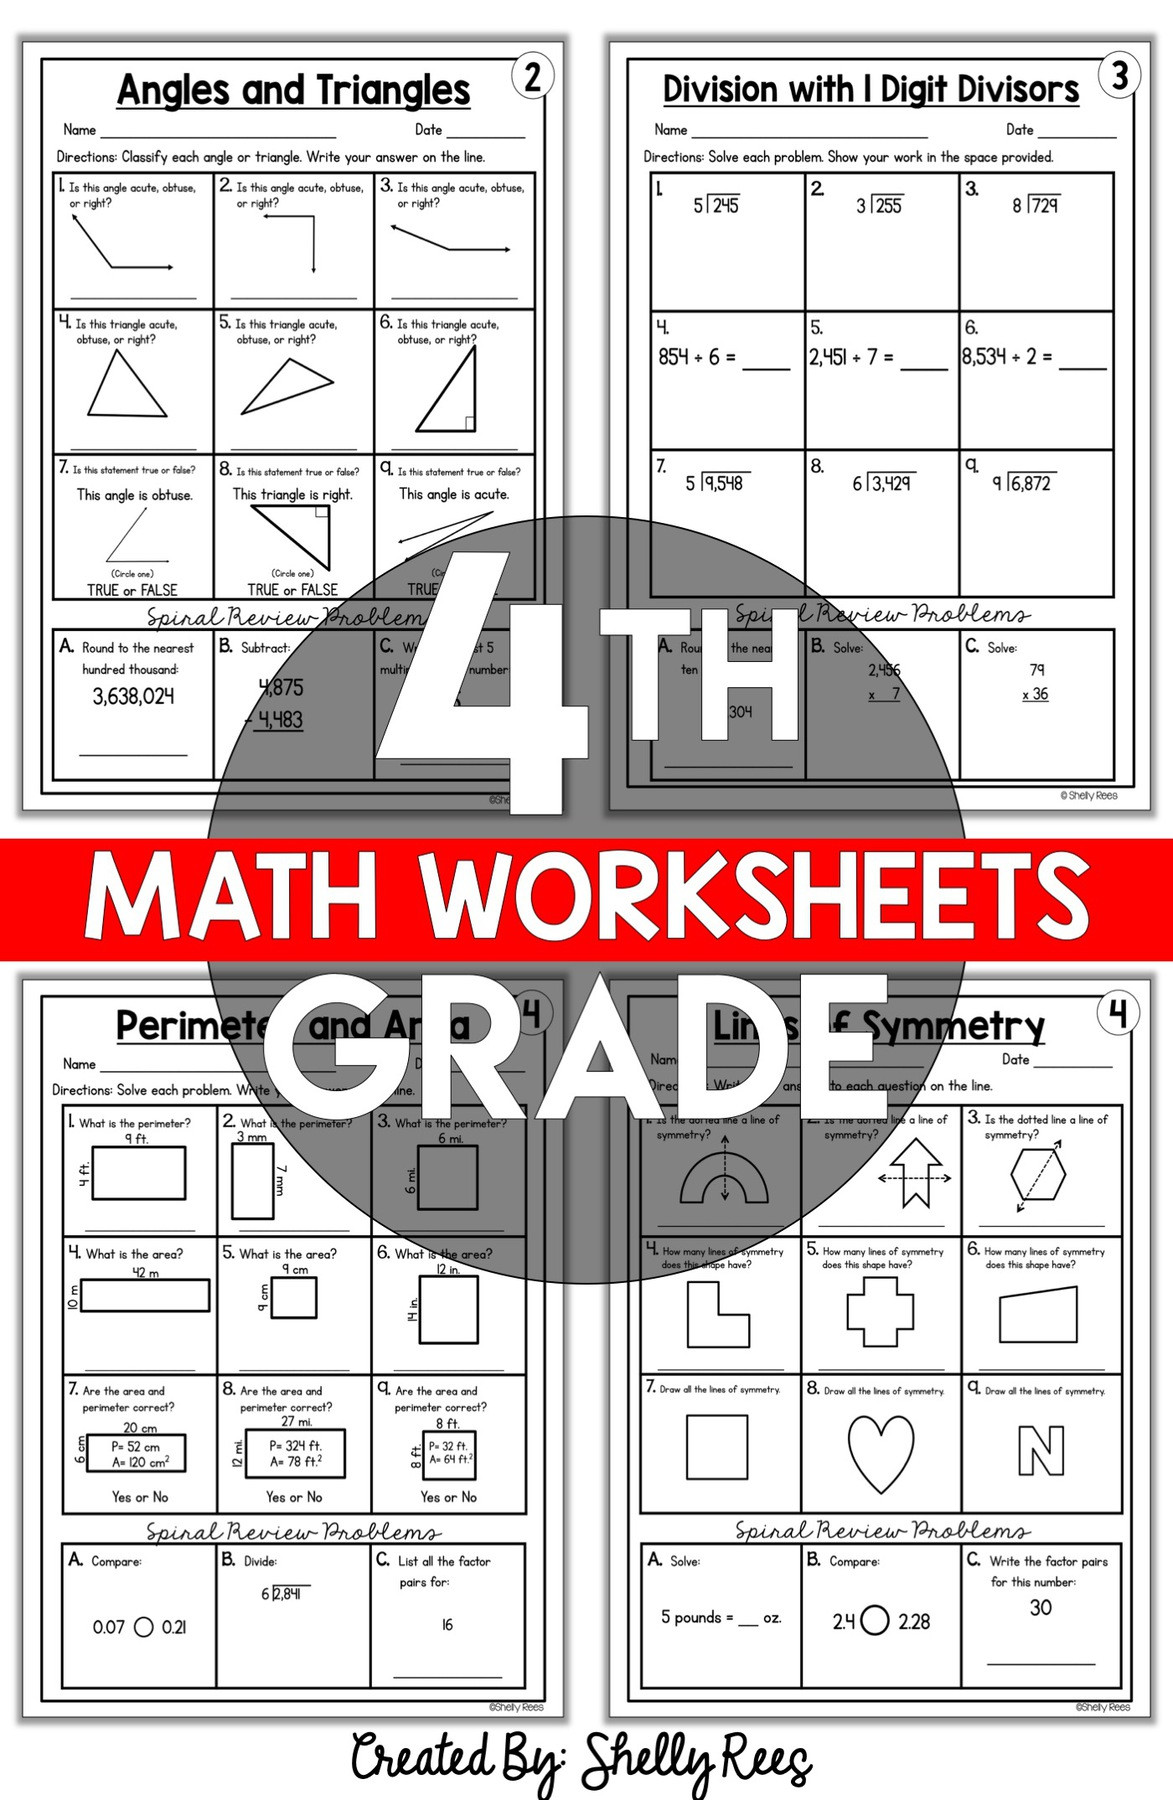 4th Grade Math Review Worksheets 4th Grade Math Worksheets Free and Printable Appletastic